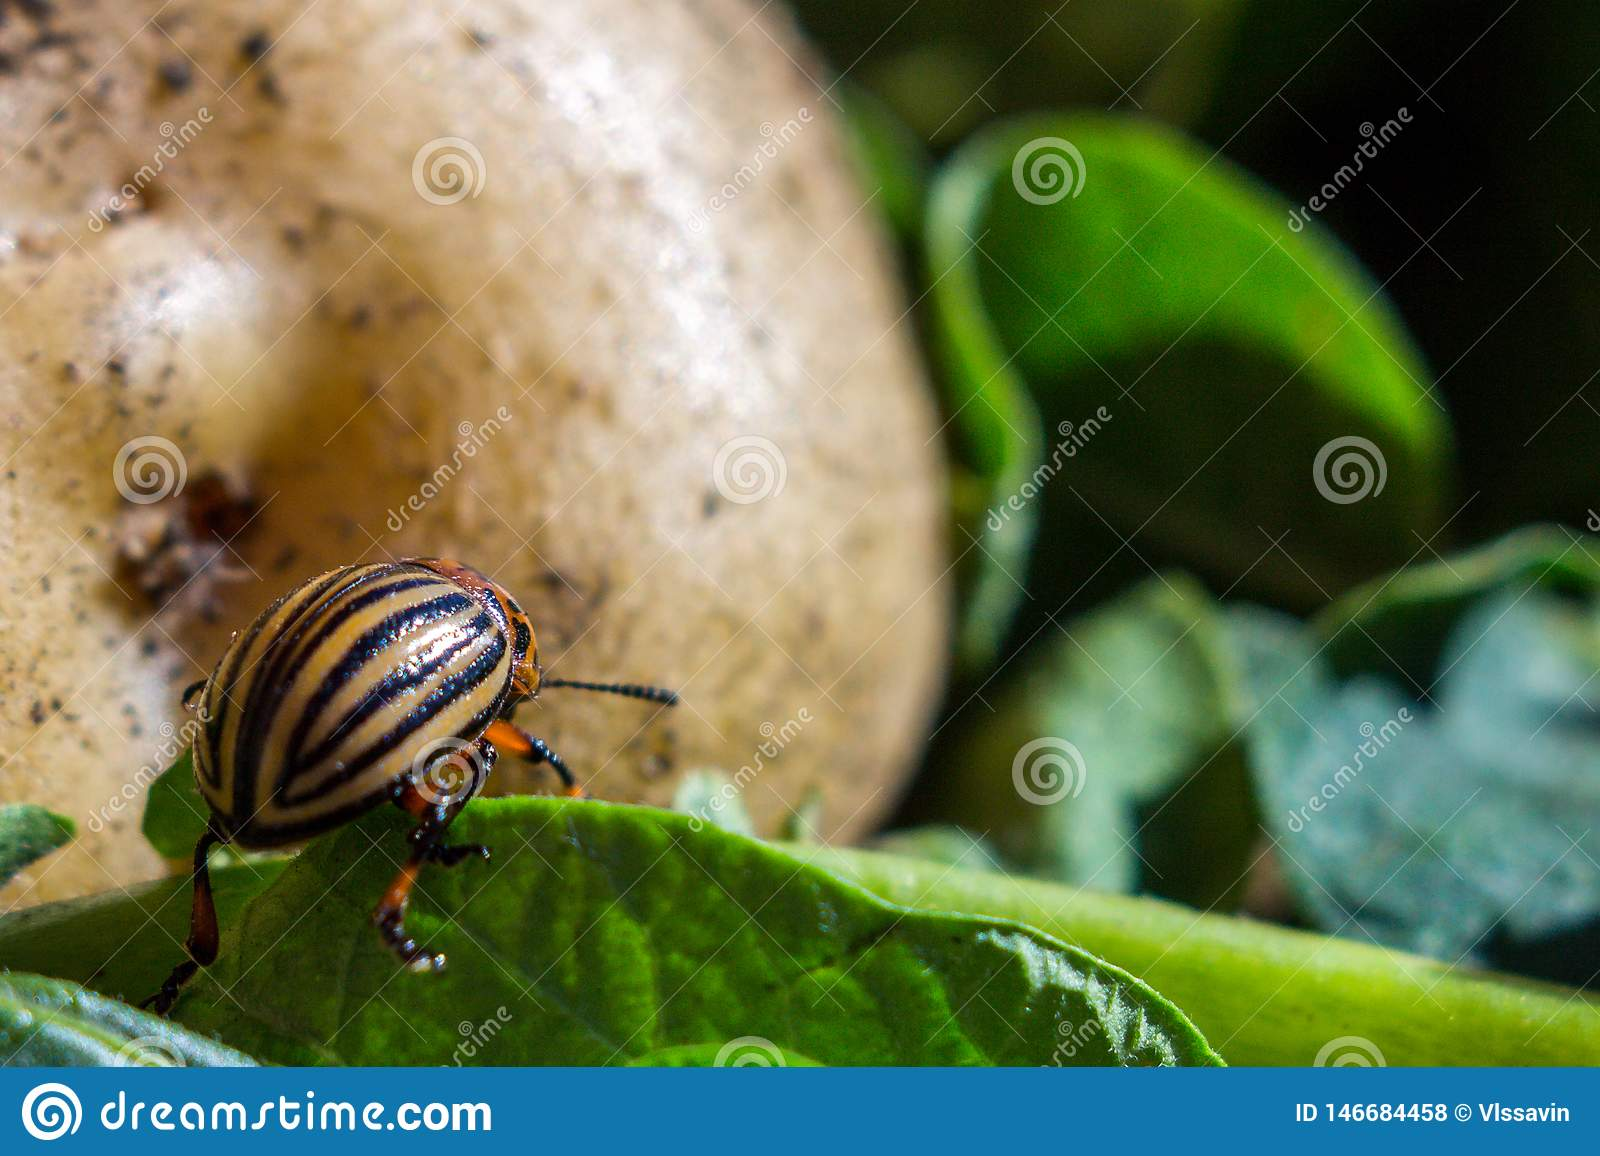 A close up image of the striped Colorado potato beetle that crawls on potatoes and green leaves and eats them